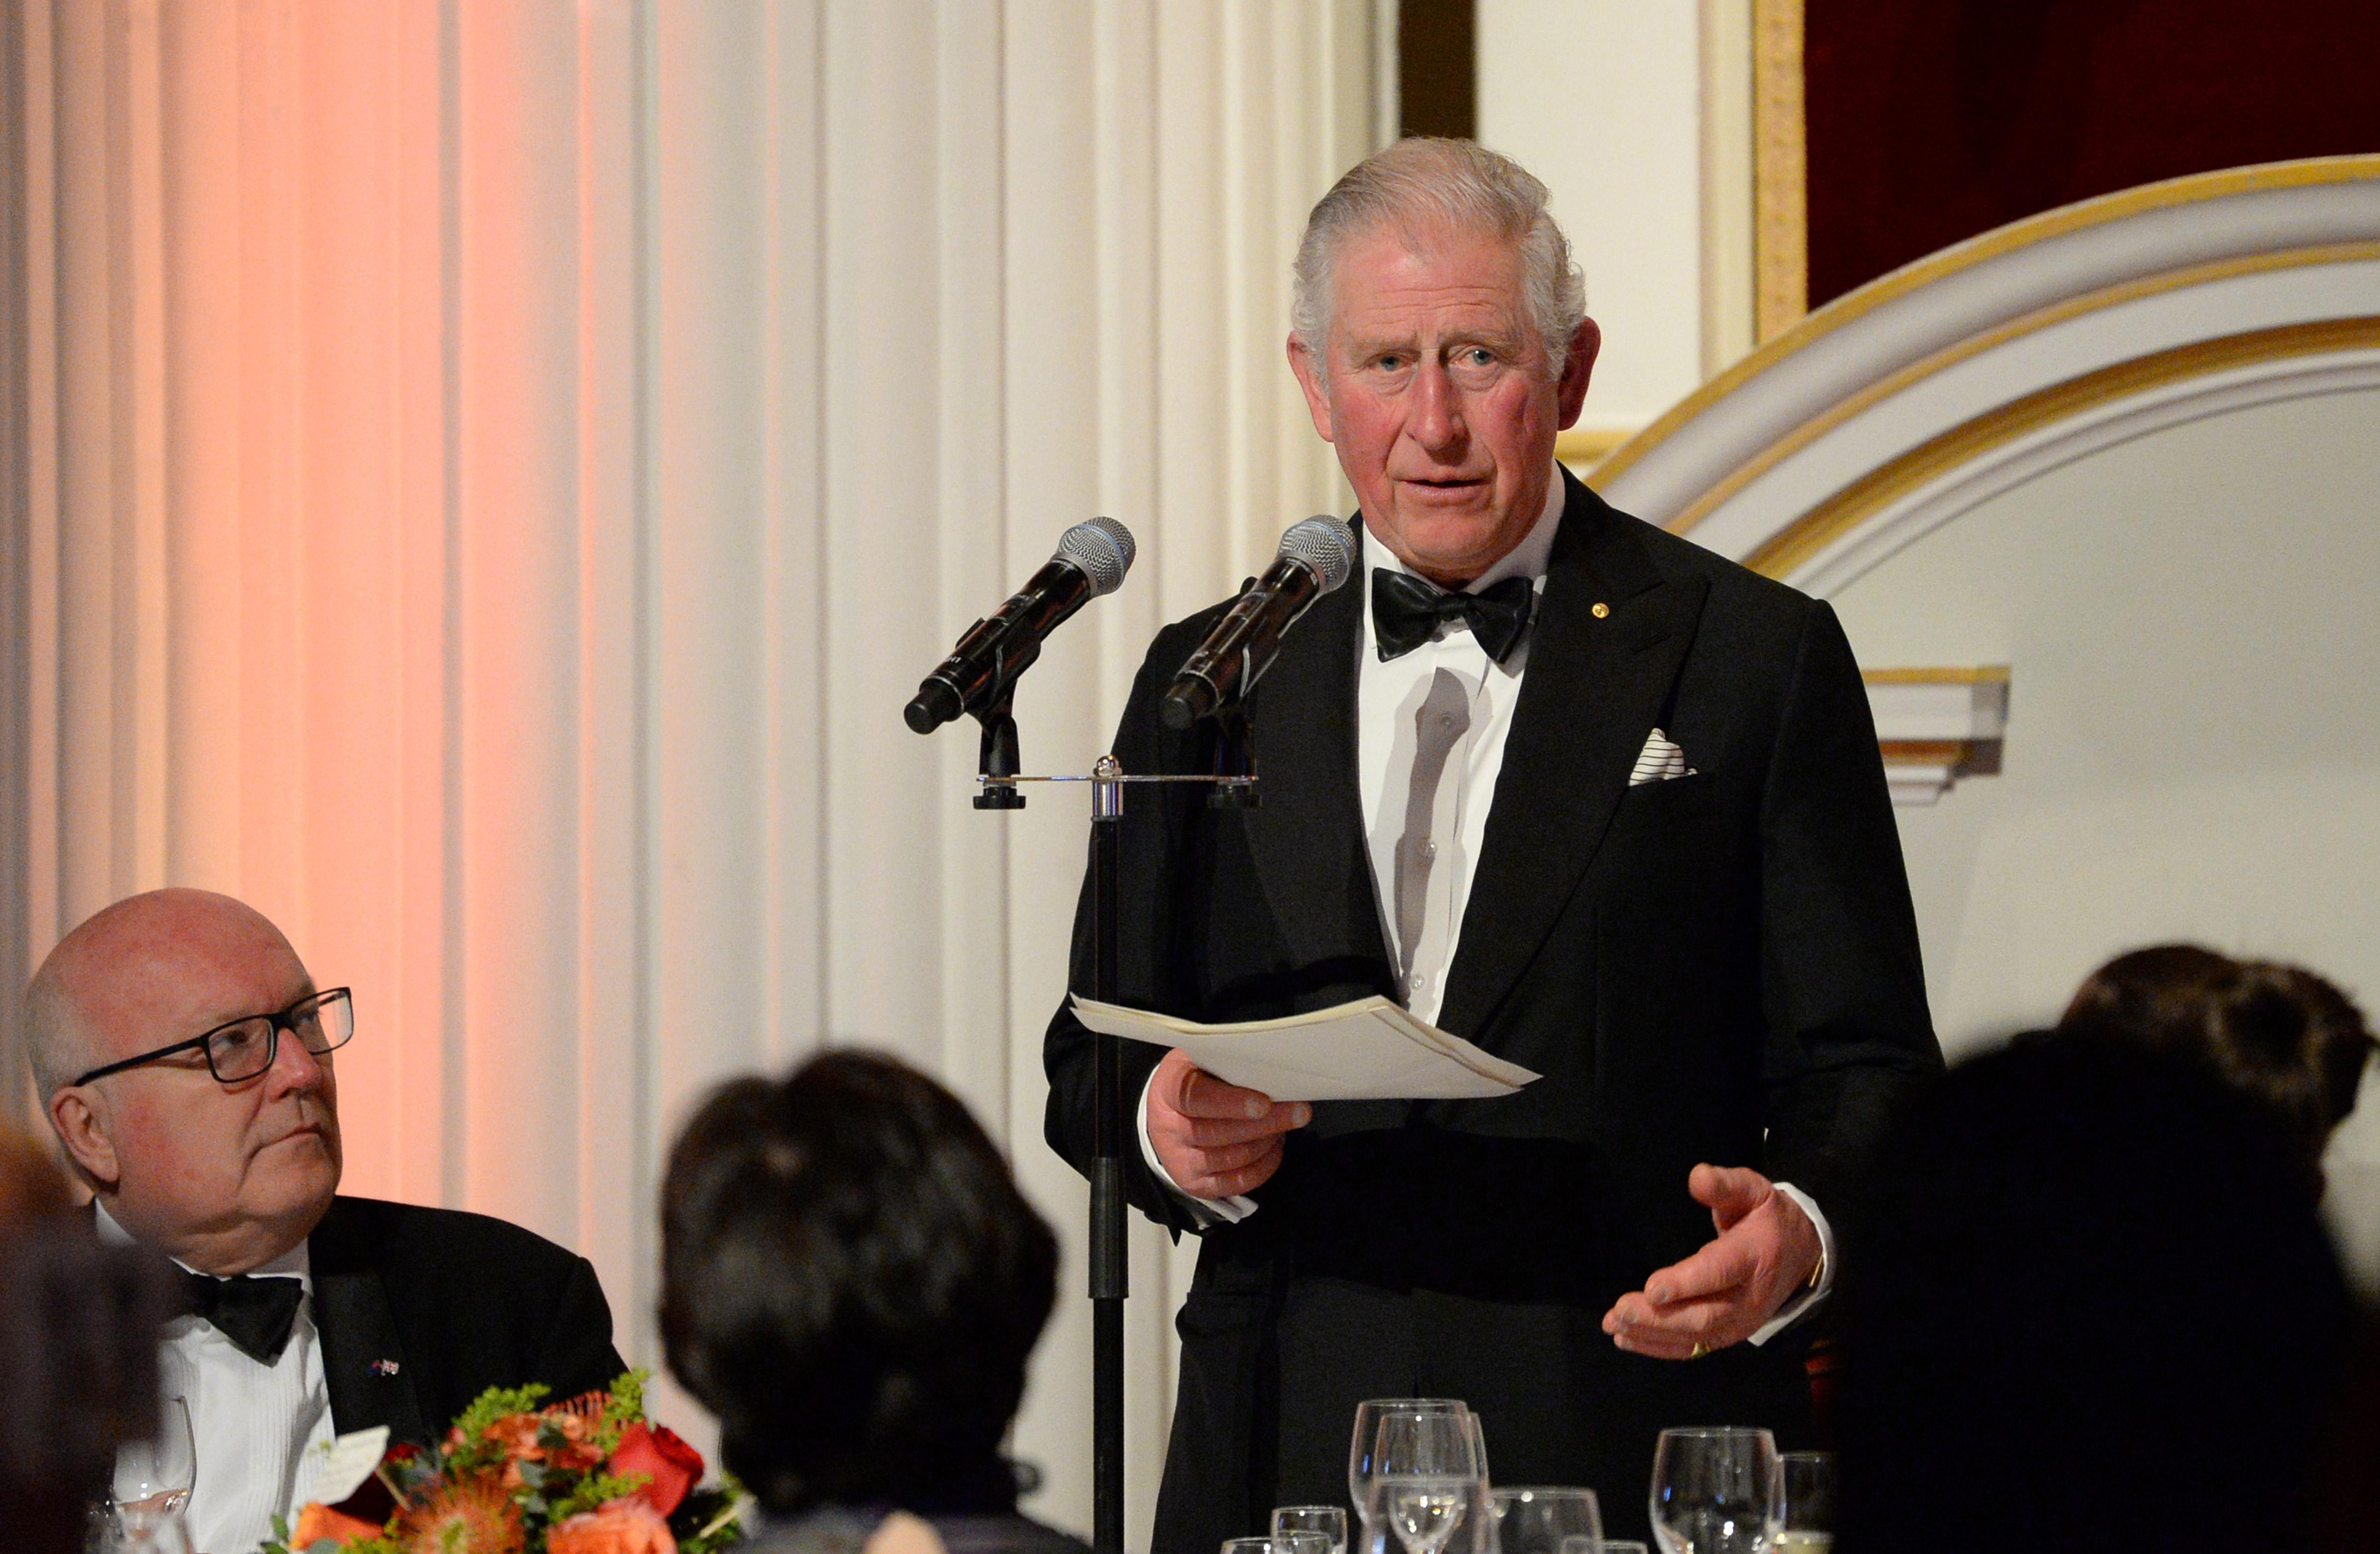 LONDON, ENGLAND - MARCH 12: Prince Charles, Prince of Wales makes a speech as he attends a dinner in aid of the Australian bushfire relief and recovery effort at Mansion House on March 12, 2020 in London, England. (Photo by Eamonn M. McCormack - WPA Pool/Getty Images)